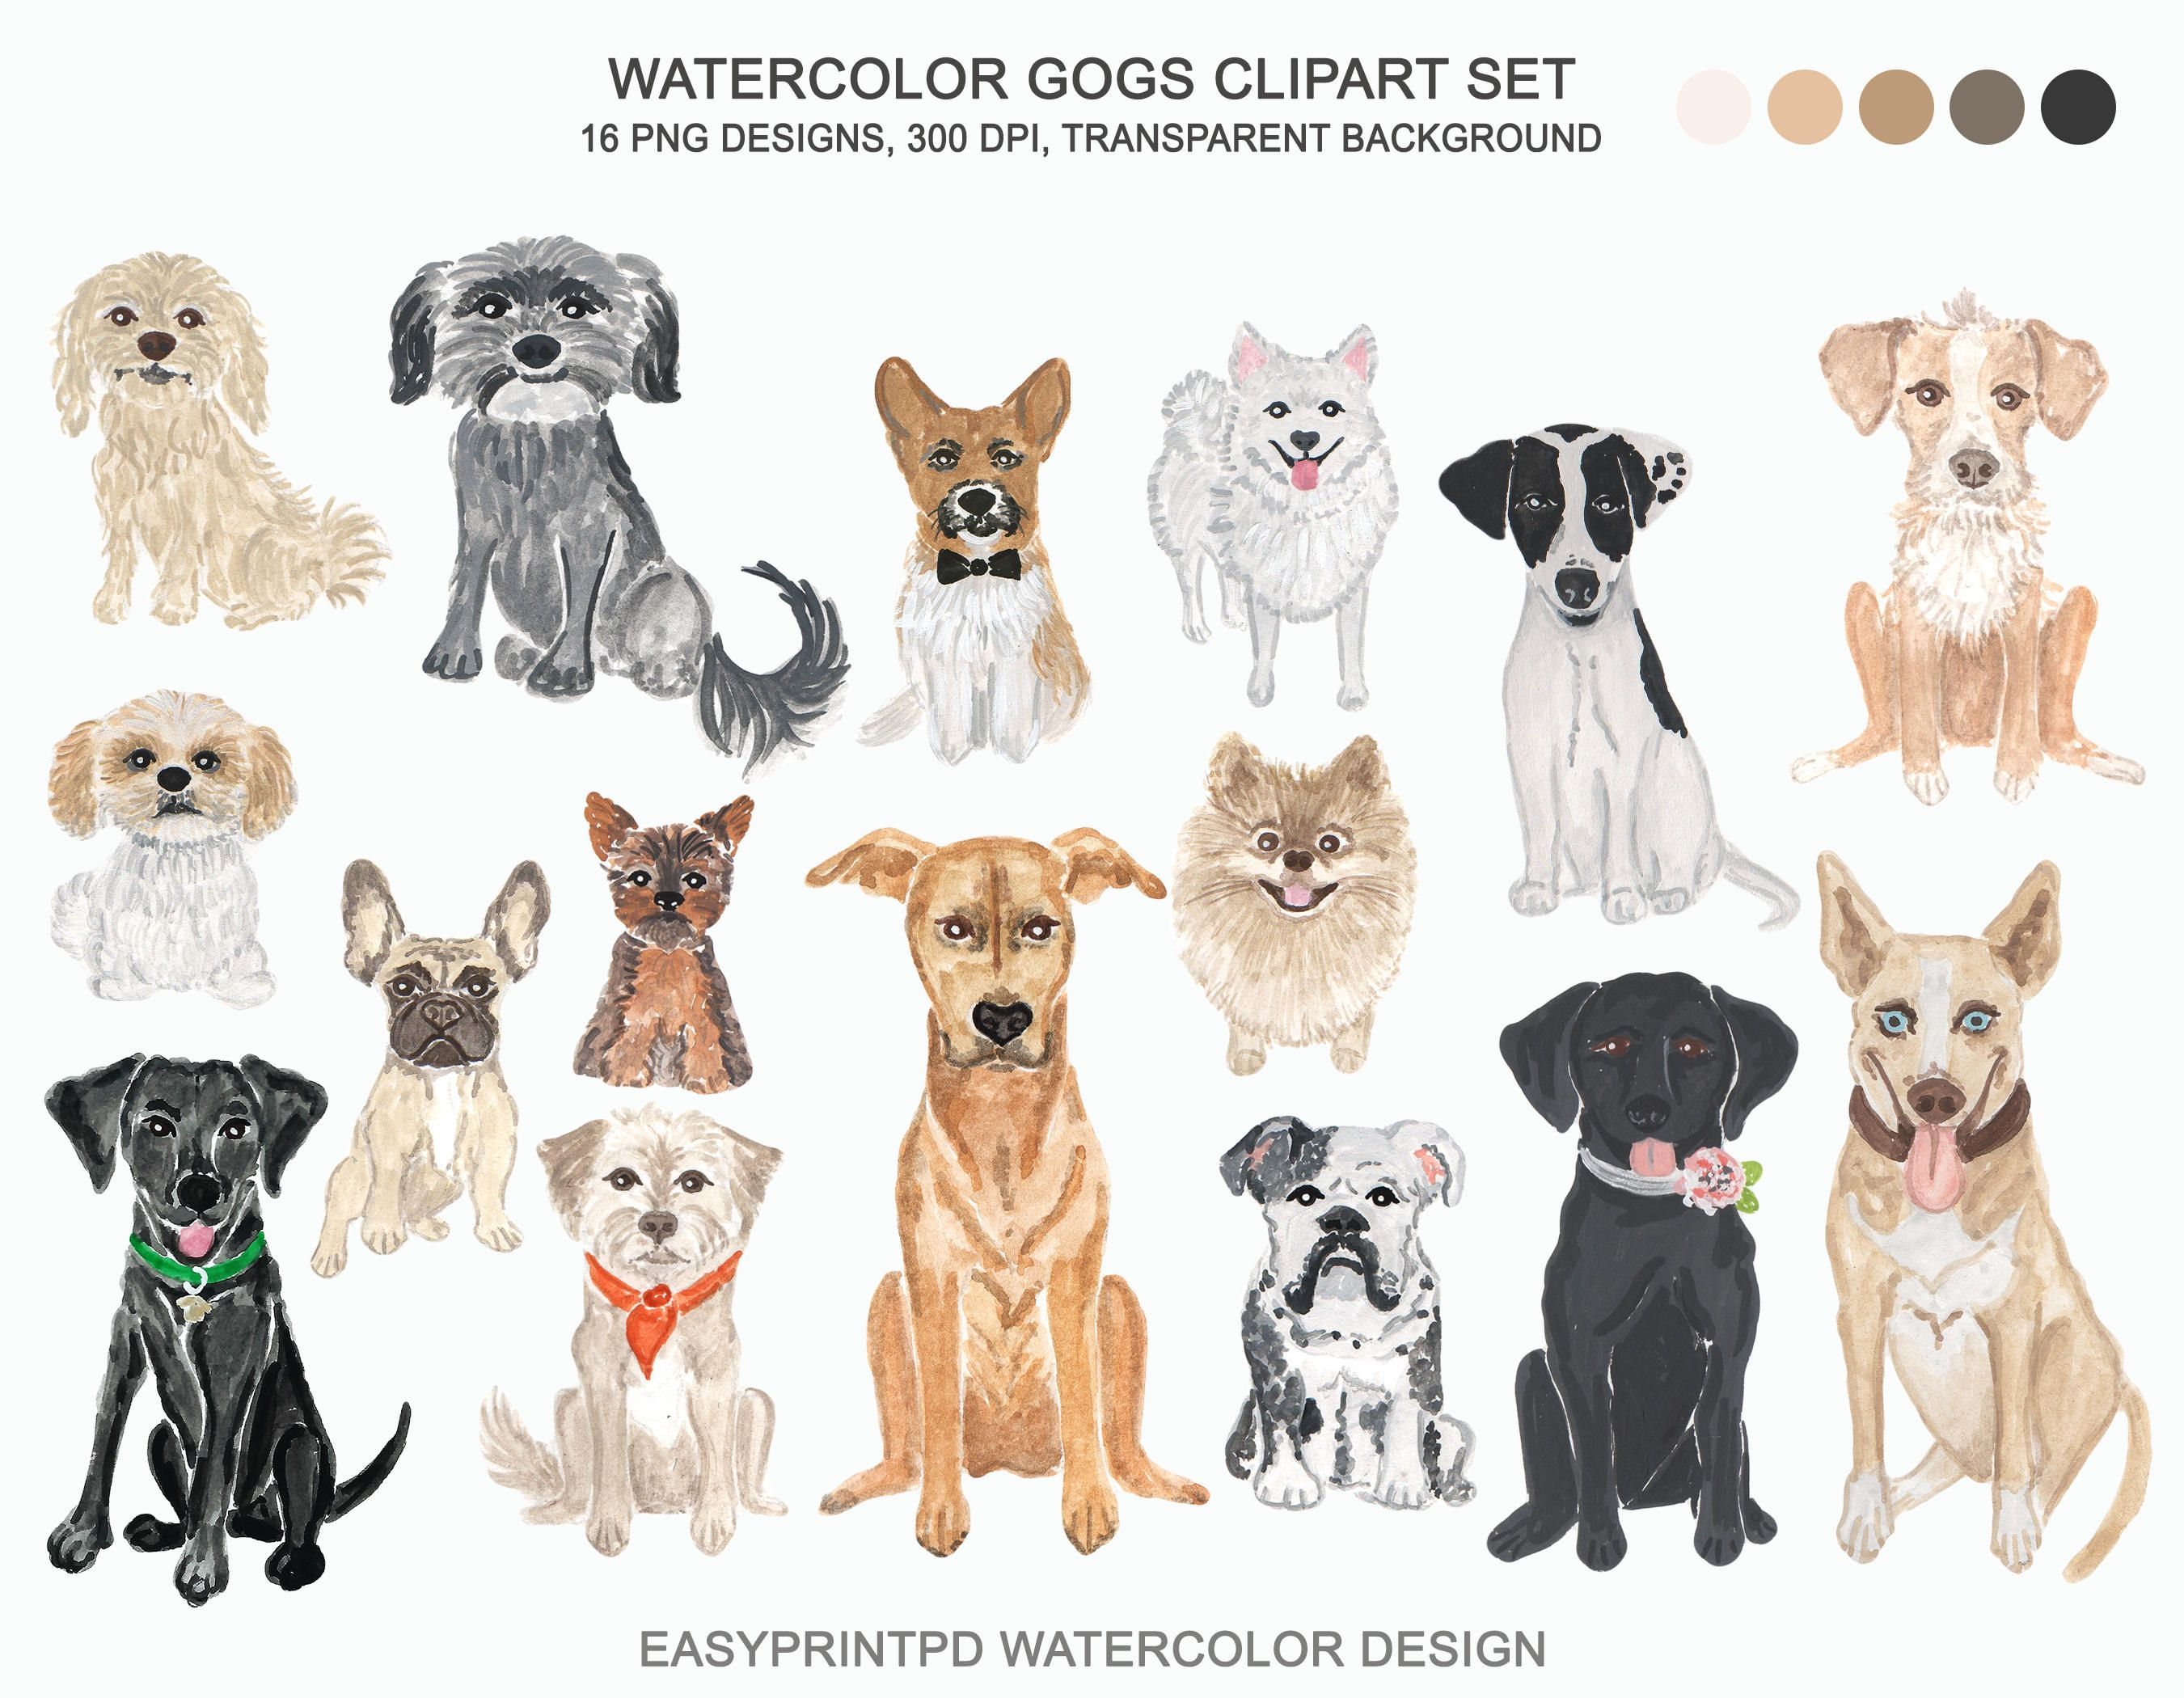 Watercolor Dogs Clipart Breed Clip Art Pet Puppies Watercolor